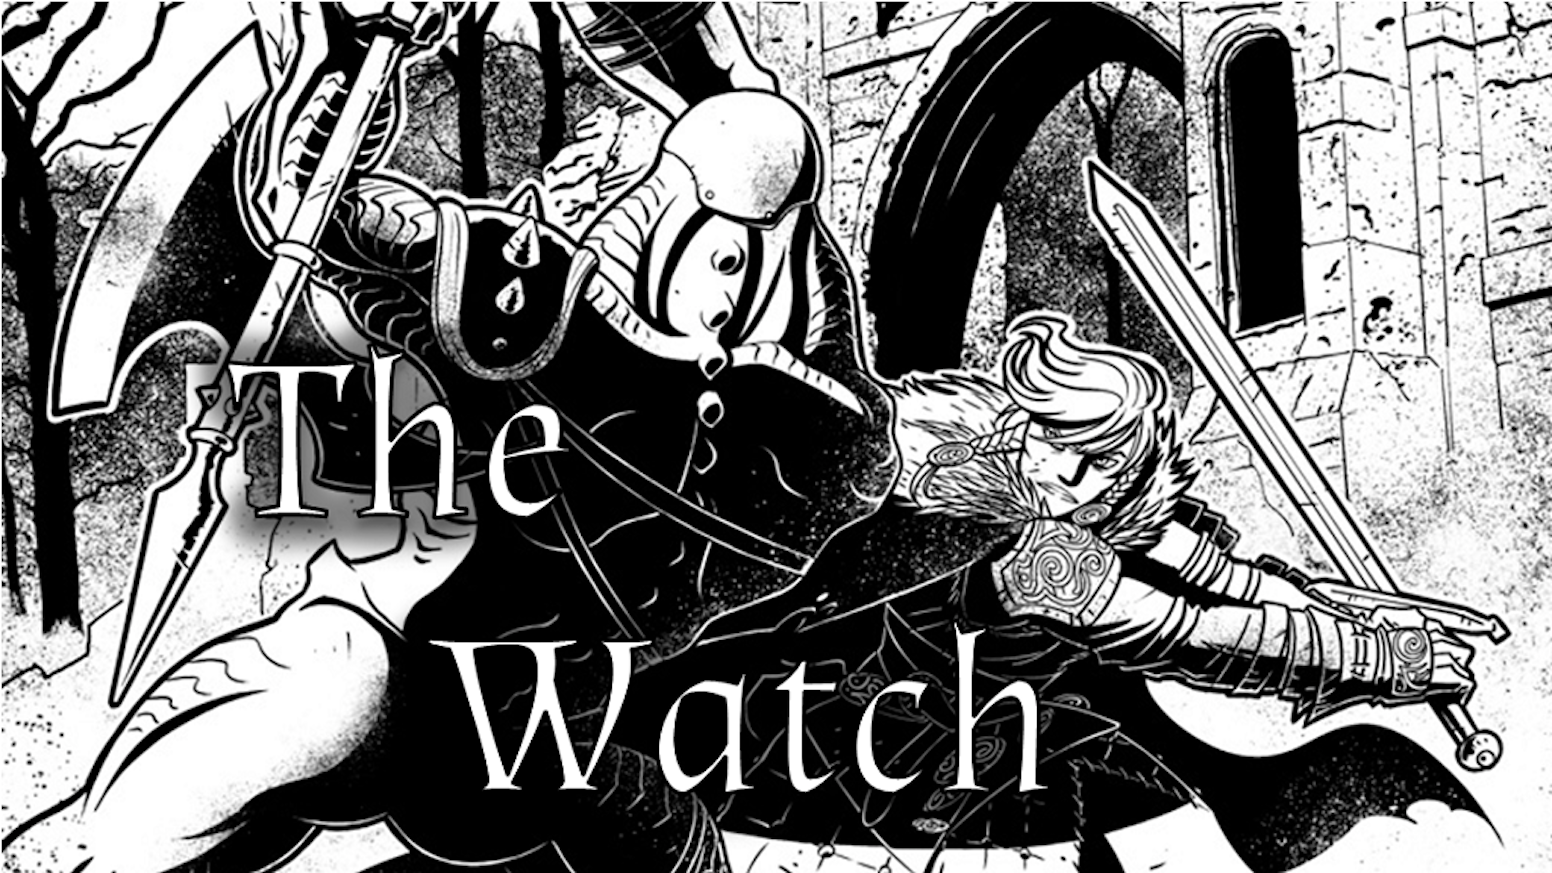 The Watch is a tabletop roleplaying game about soldiers fighting a desperate war to save their homeland.